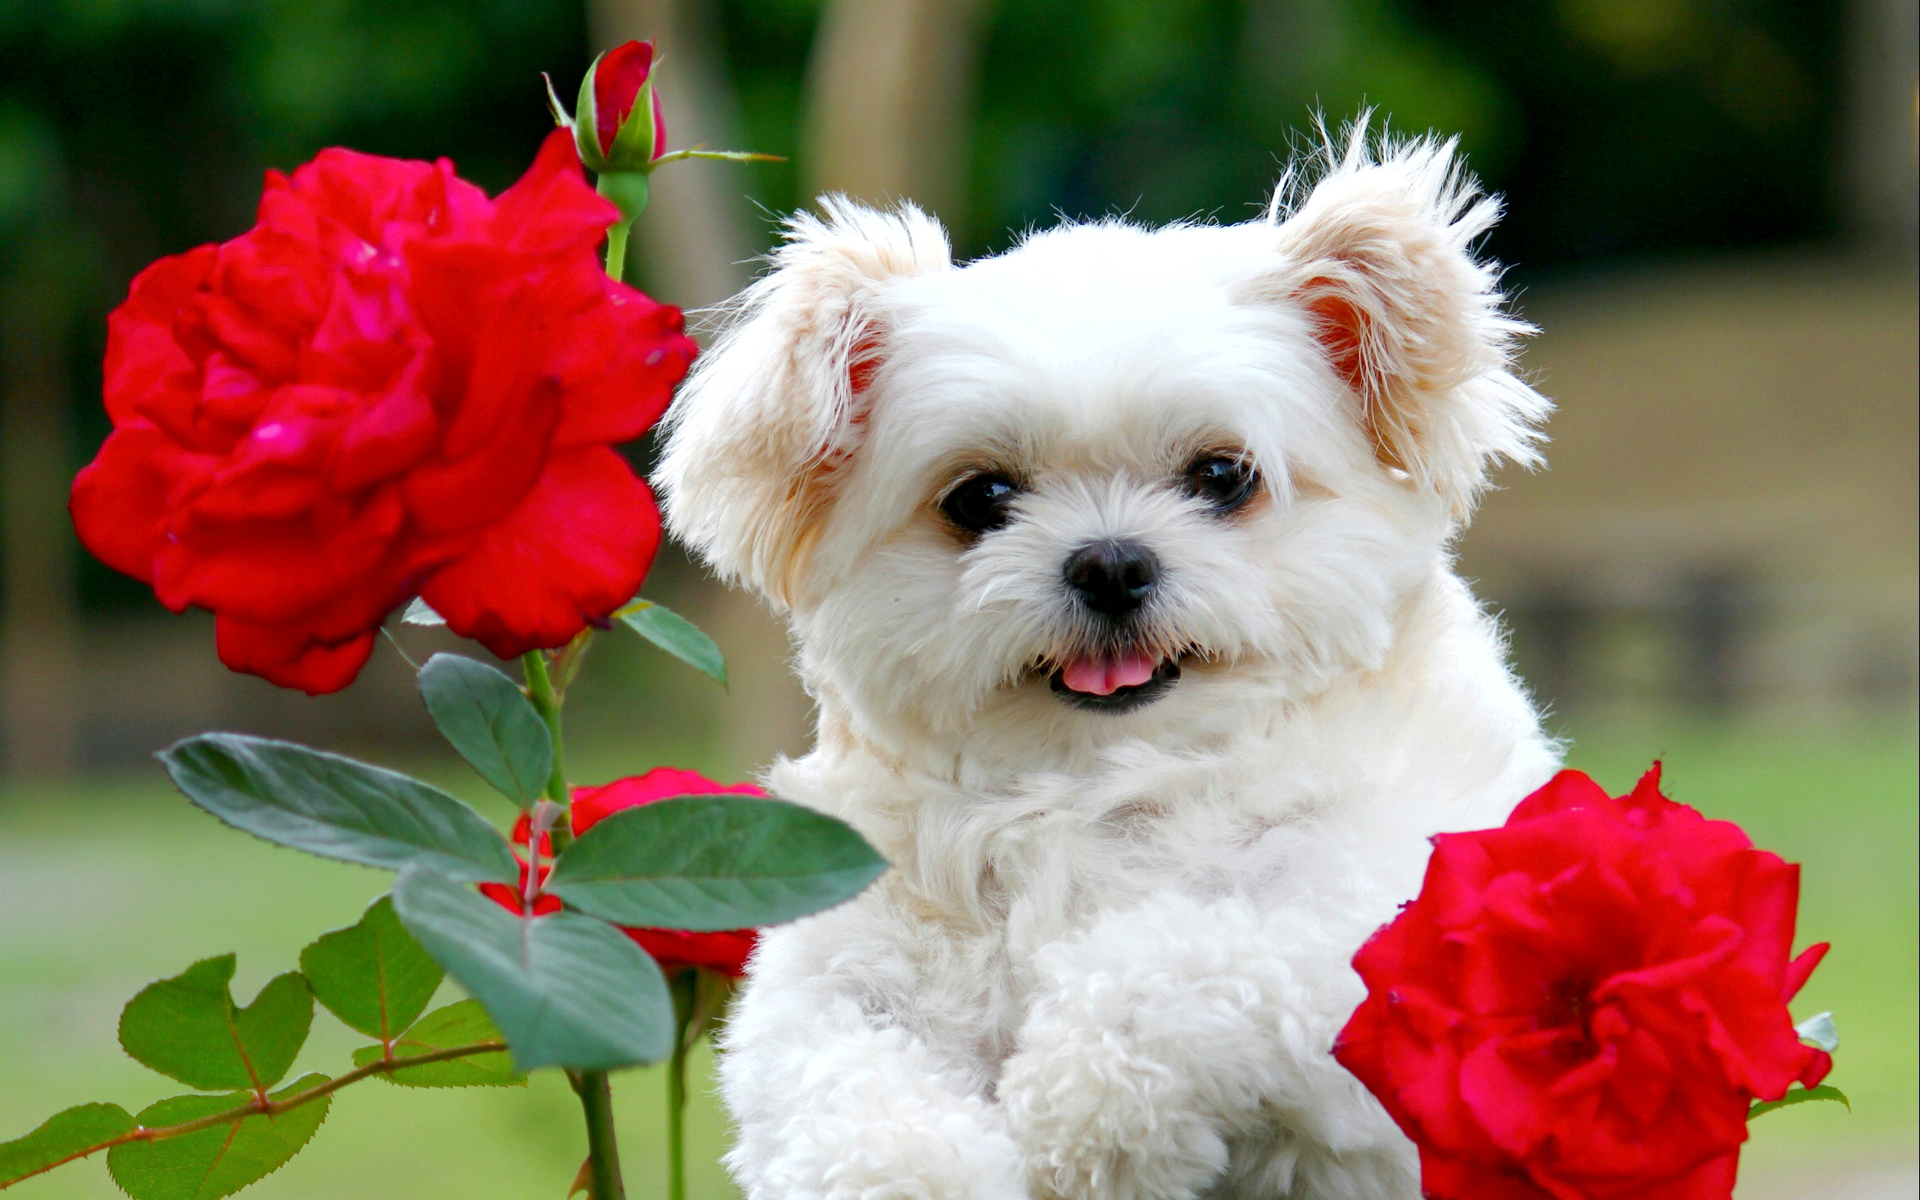 Cute puppy wallpaper   SF Wallpaper 1920x1200